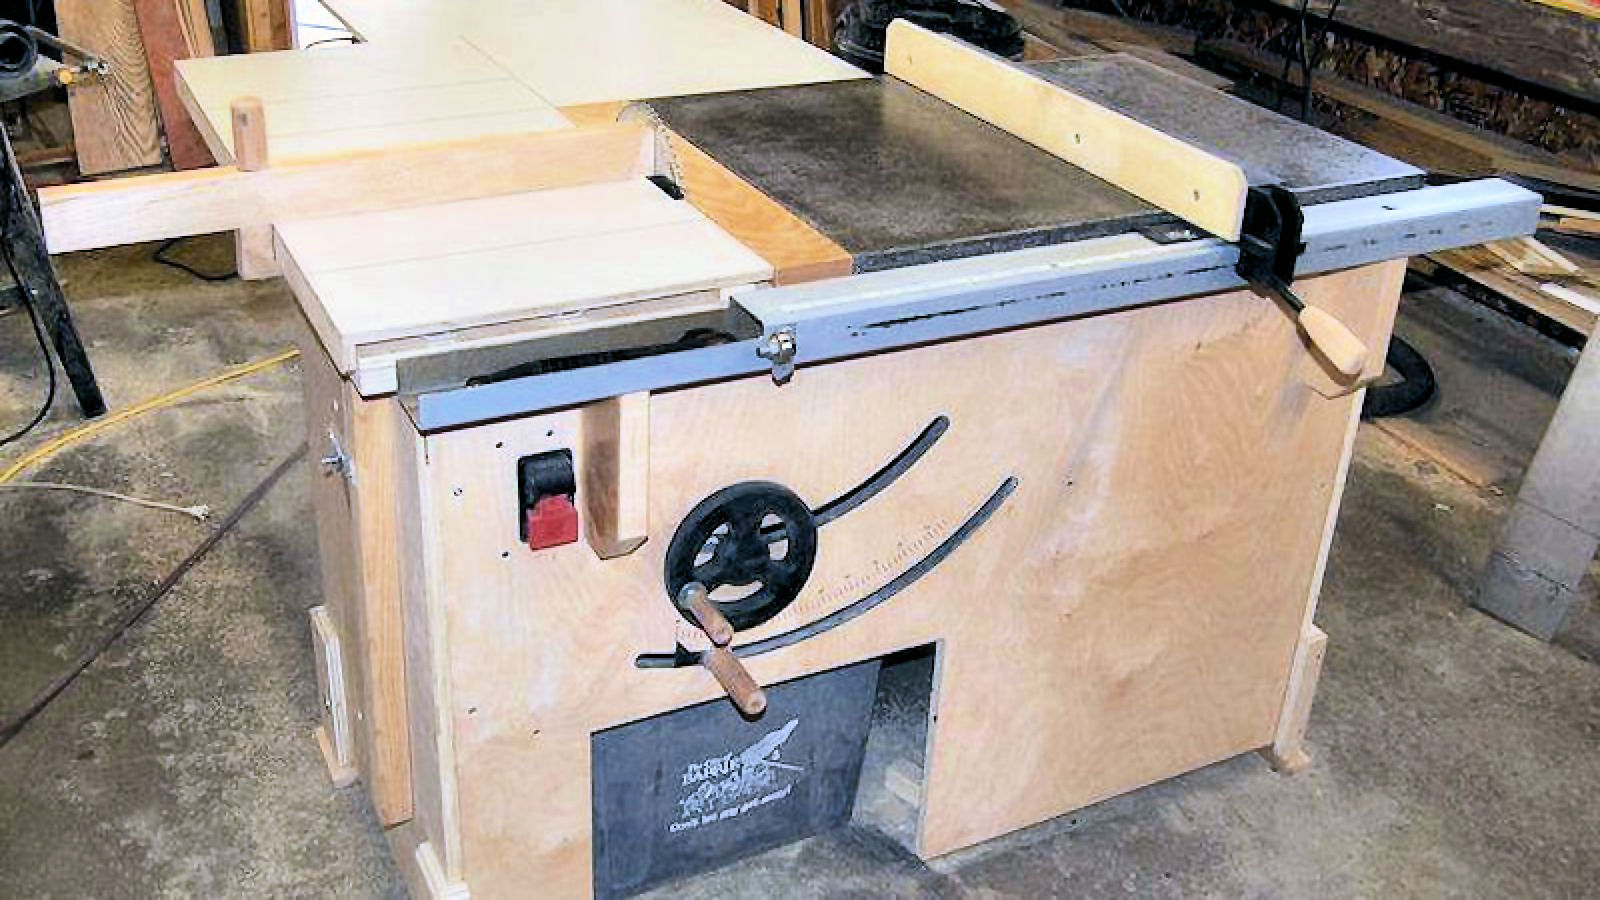 How To Make A Table Saw - IBUILDIT.CA